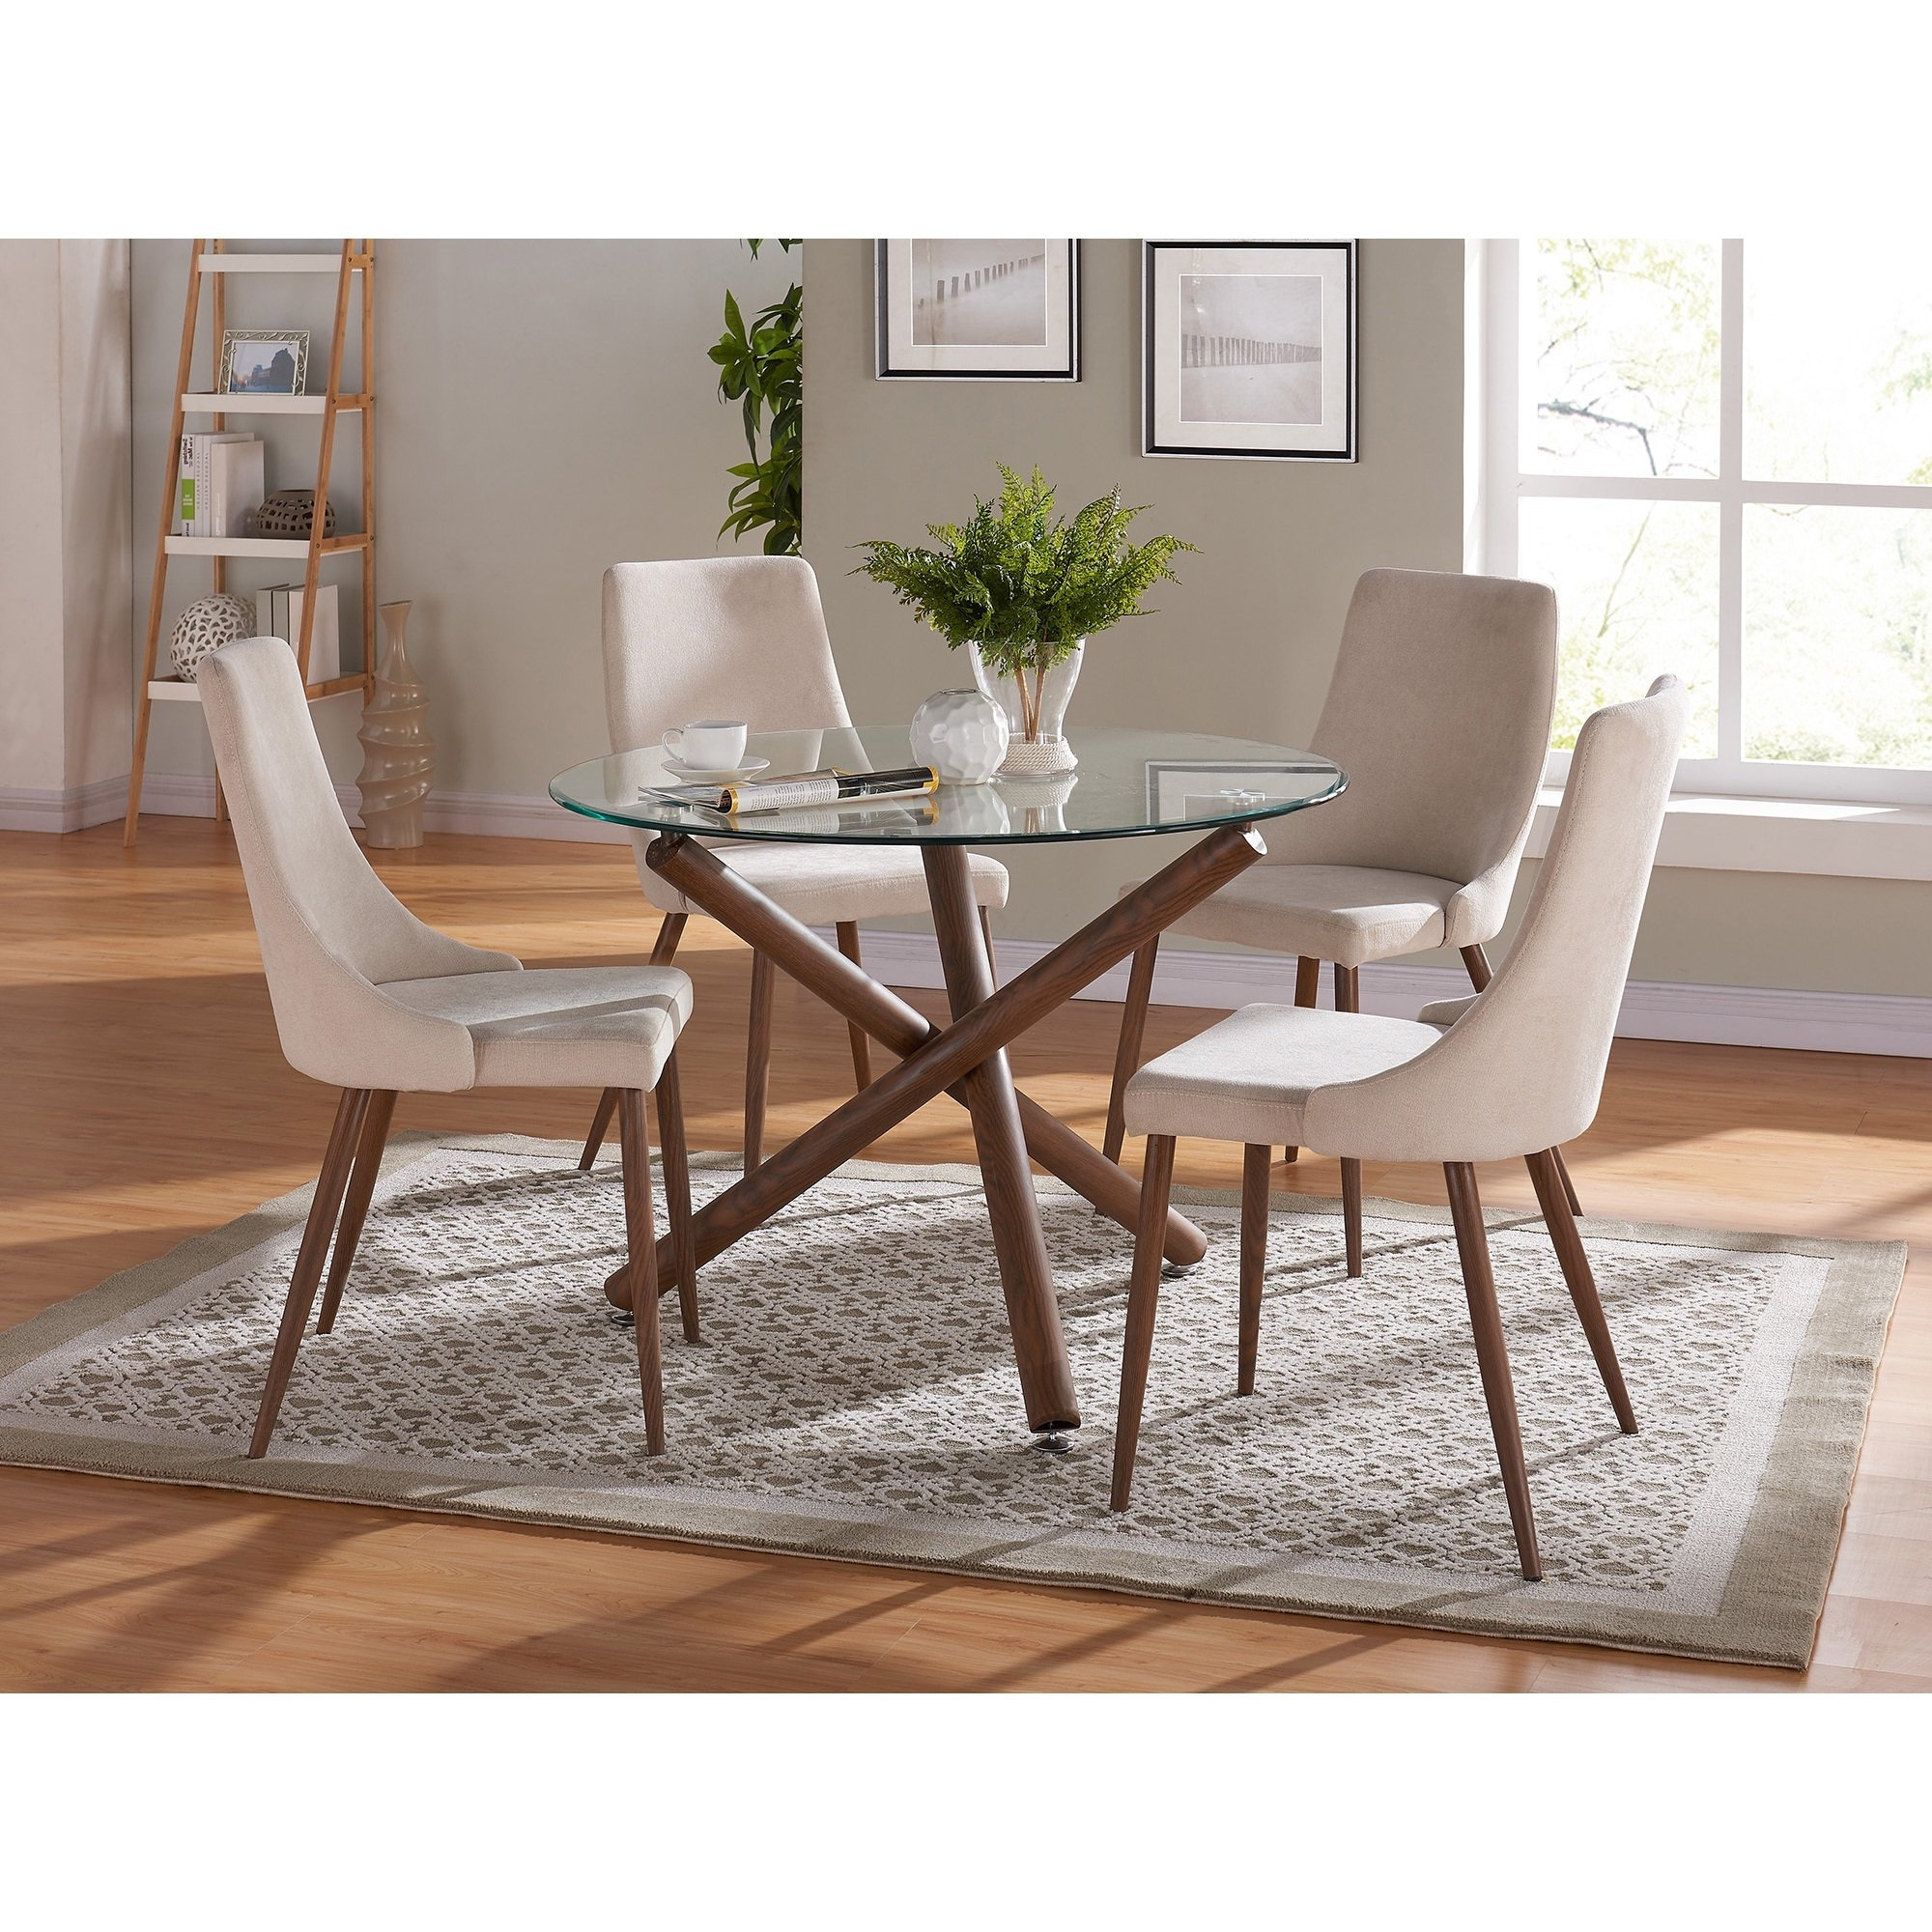 Most Recently Released Cora 7 Piece Dining Sets With Regard To Shop Carson Carrington Kaskinen Dining Chair (Set Of 2) – Free (View 18 of 25)